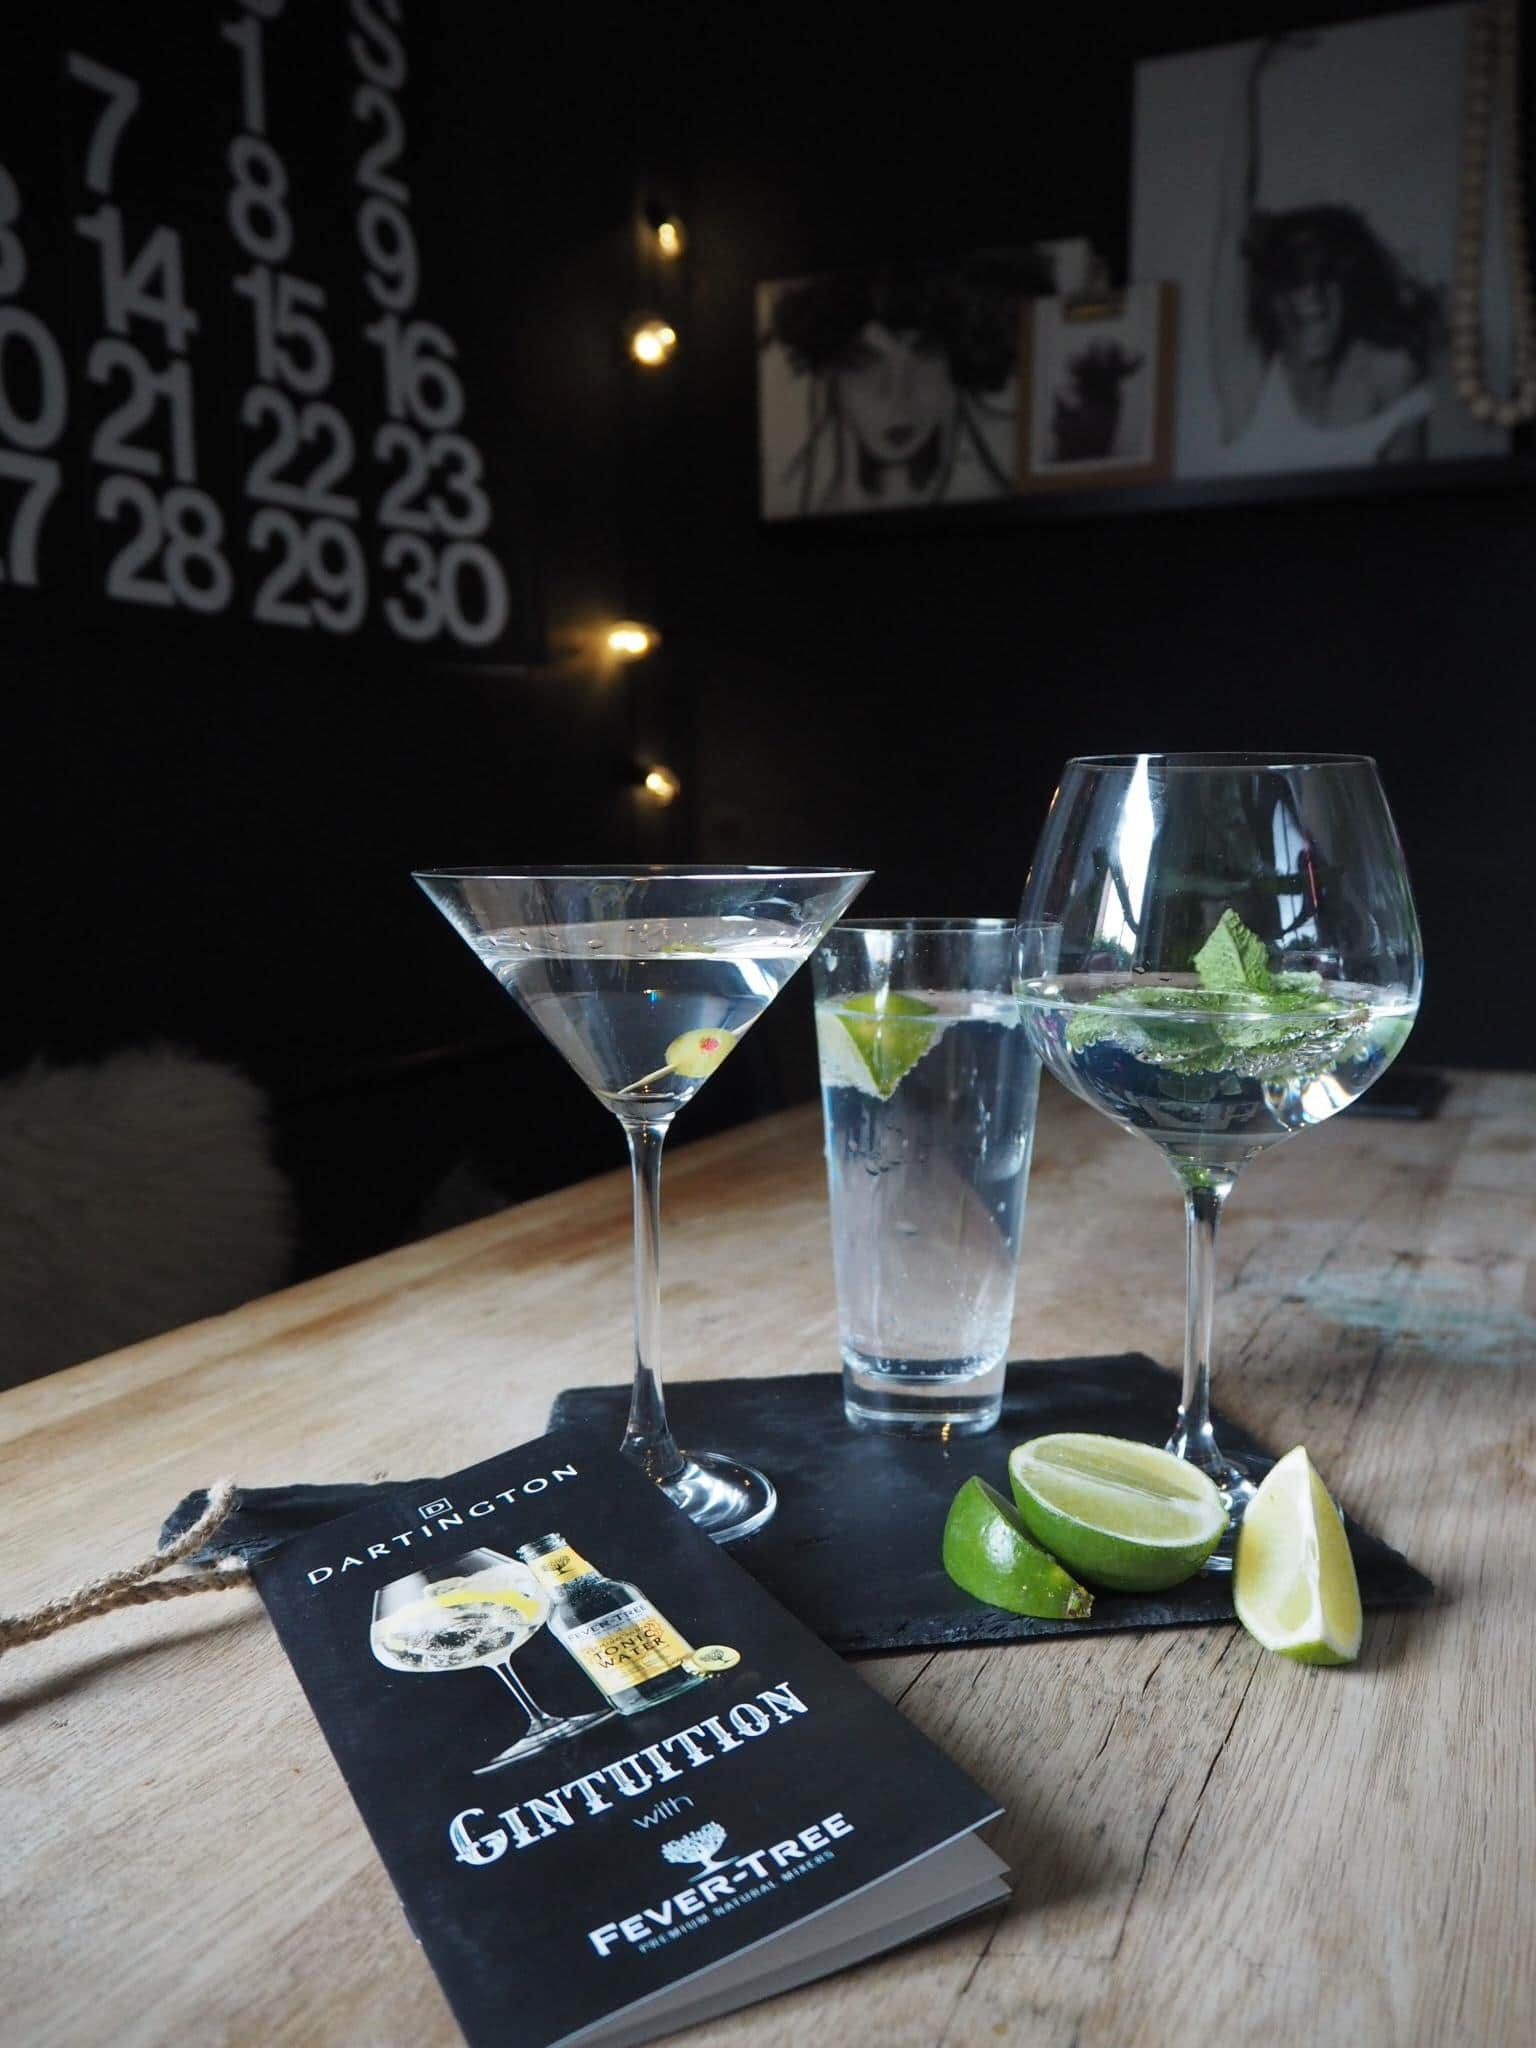 Gintuition set, Dartington Crystal